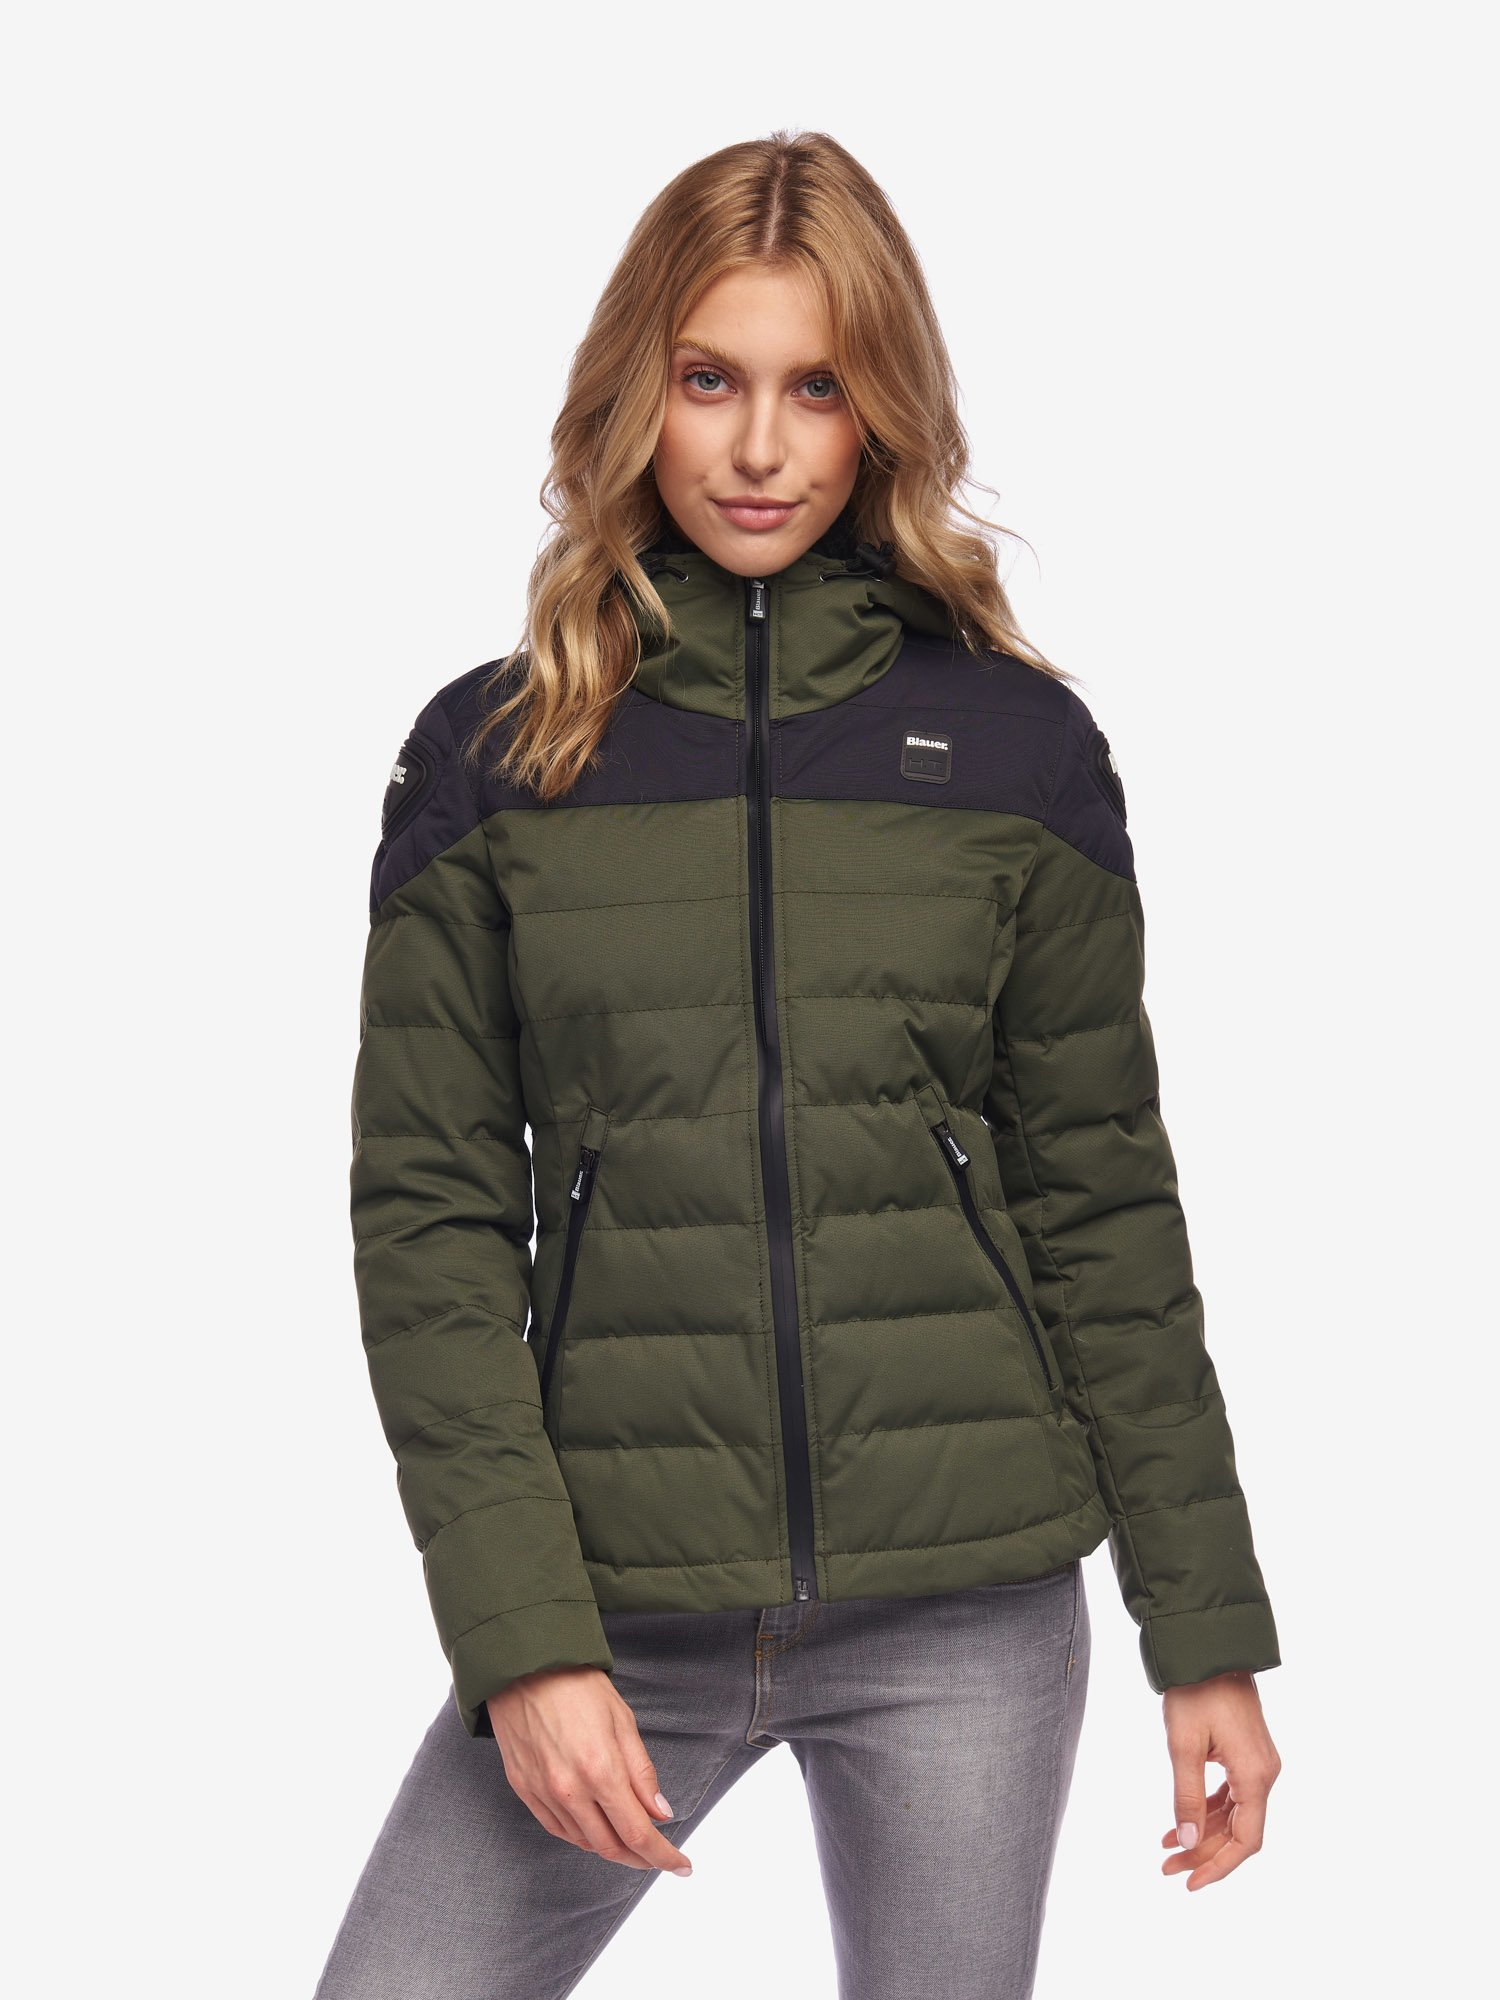 EASY WINTER DONNA 2.0 - Blauer